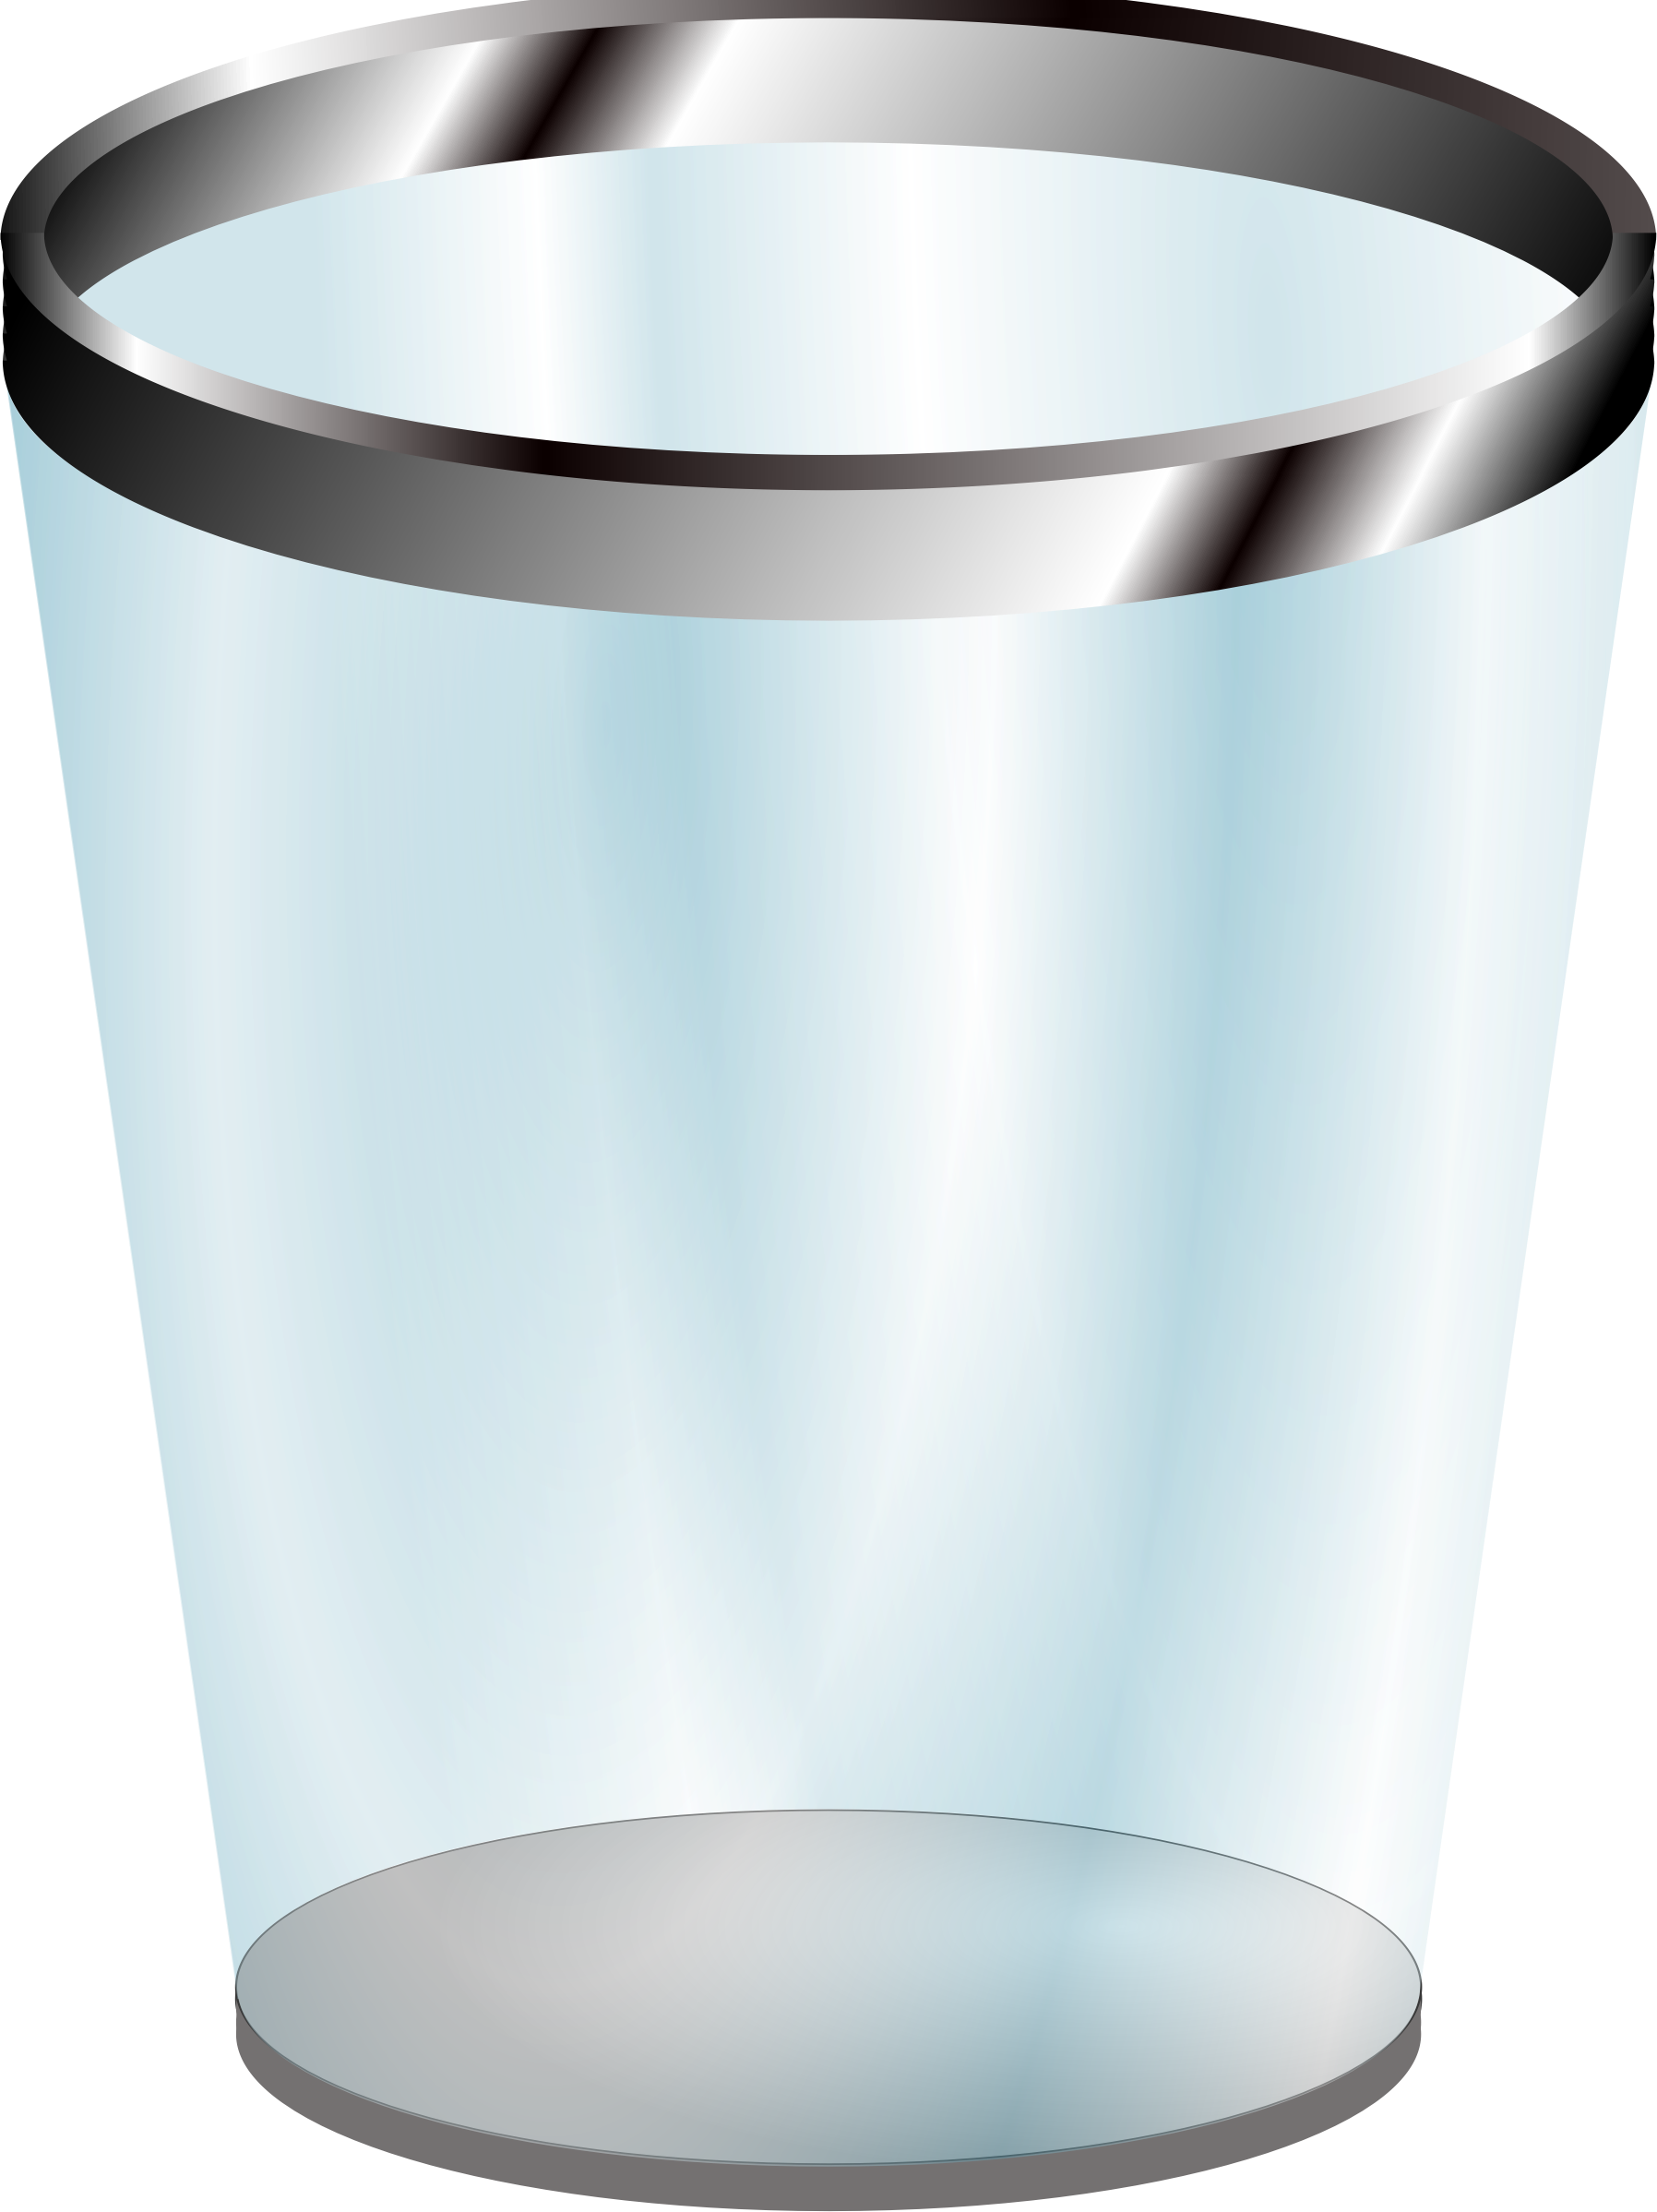 Trashcan clipart png. Trash can image purepng